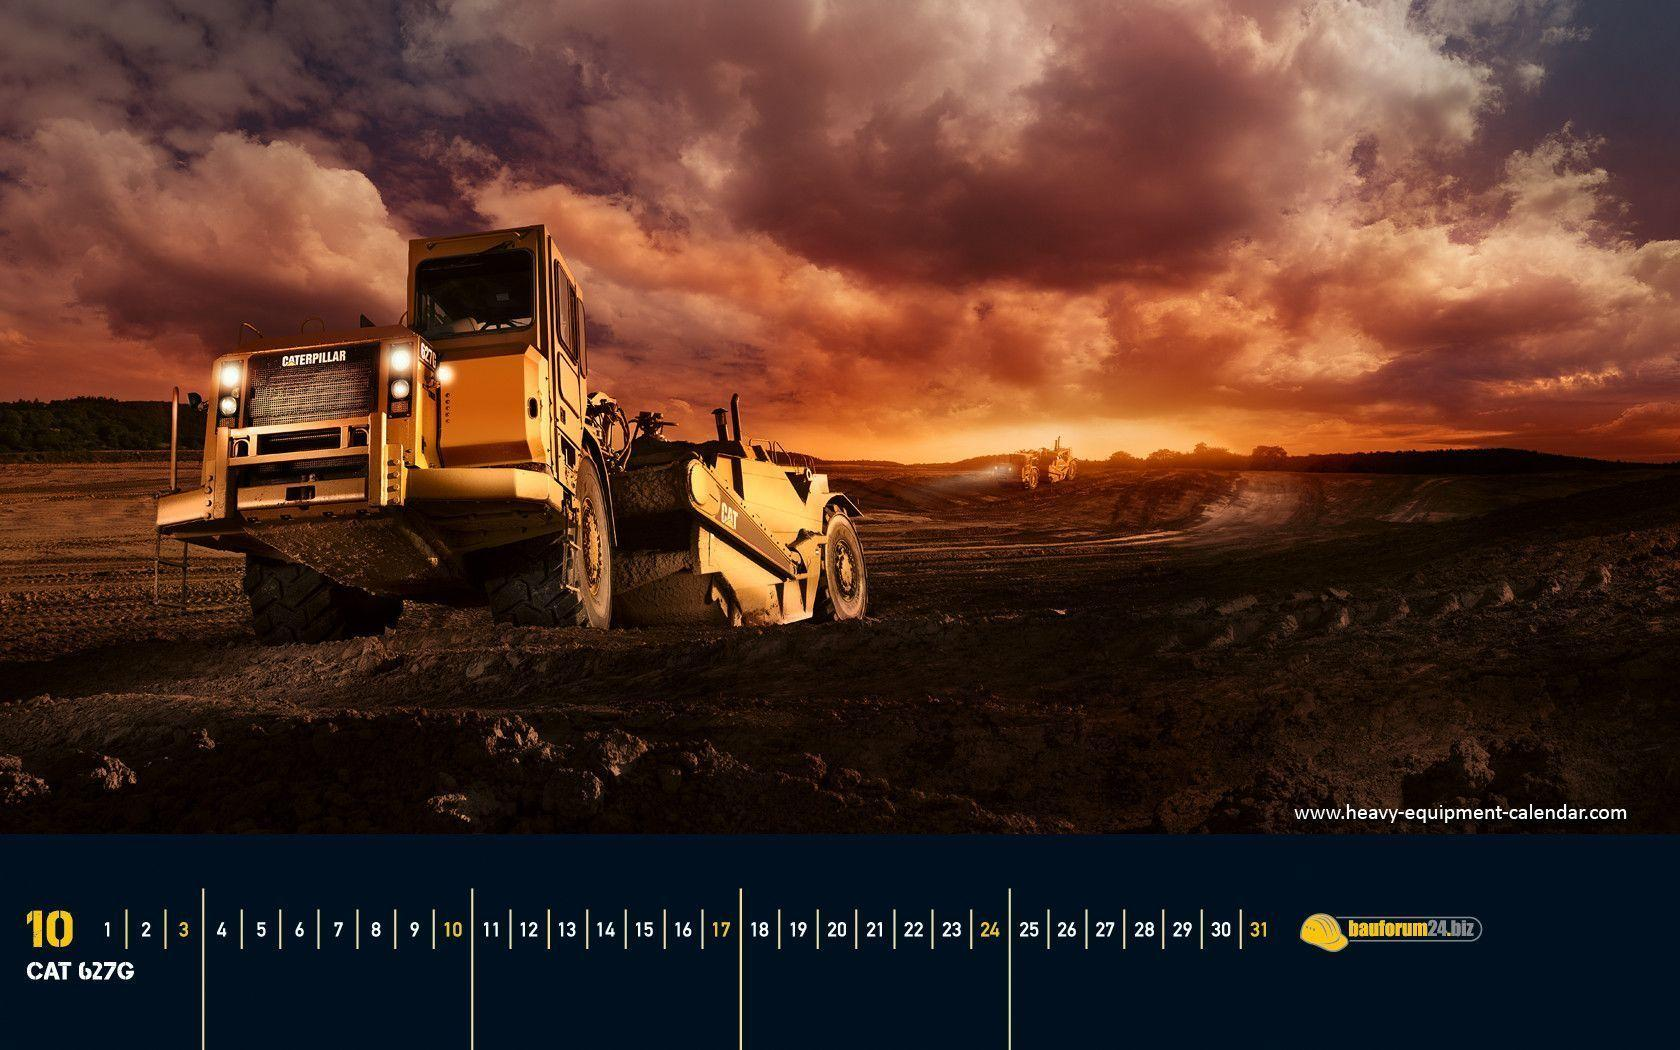 Caterpillar Equipment Wallpapers 1680x1050